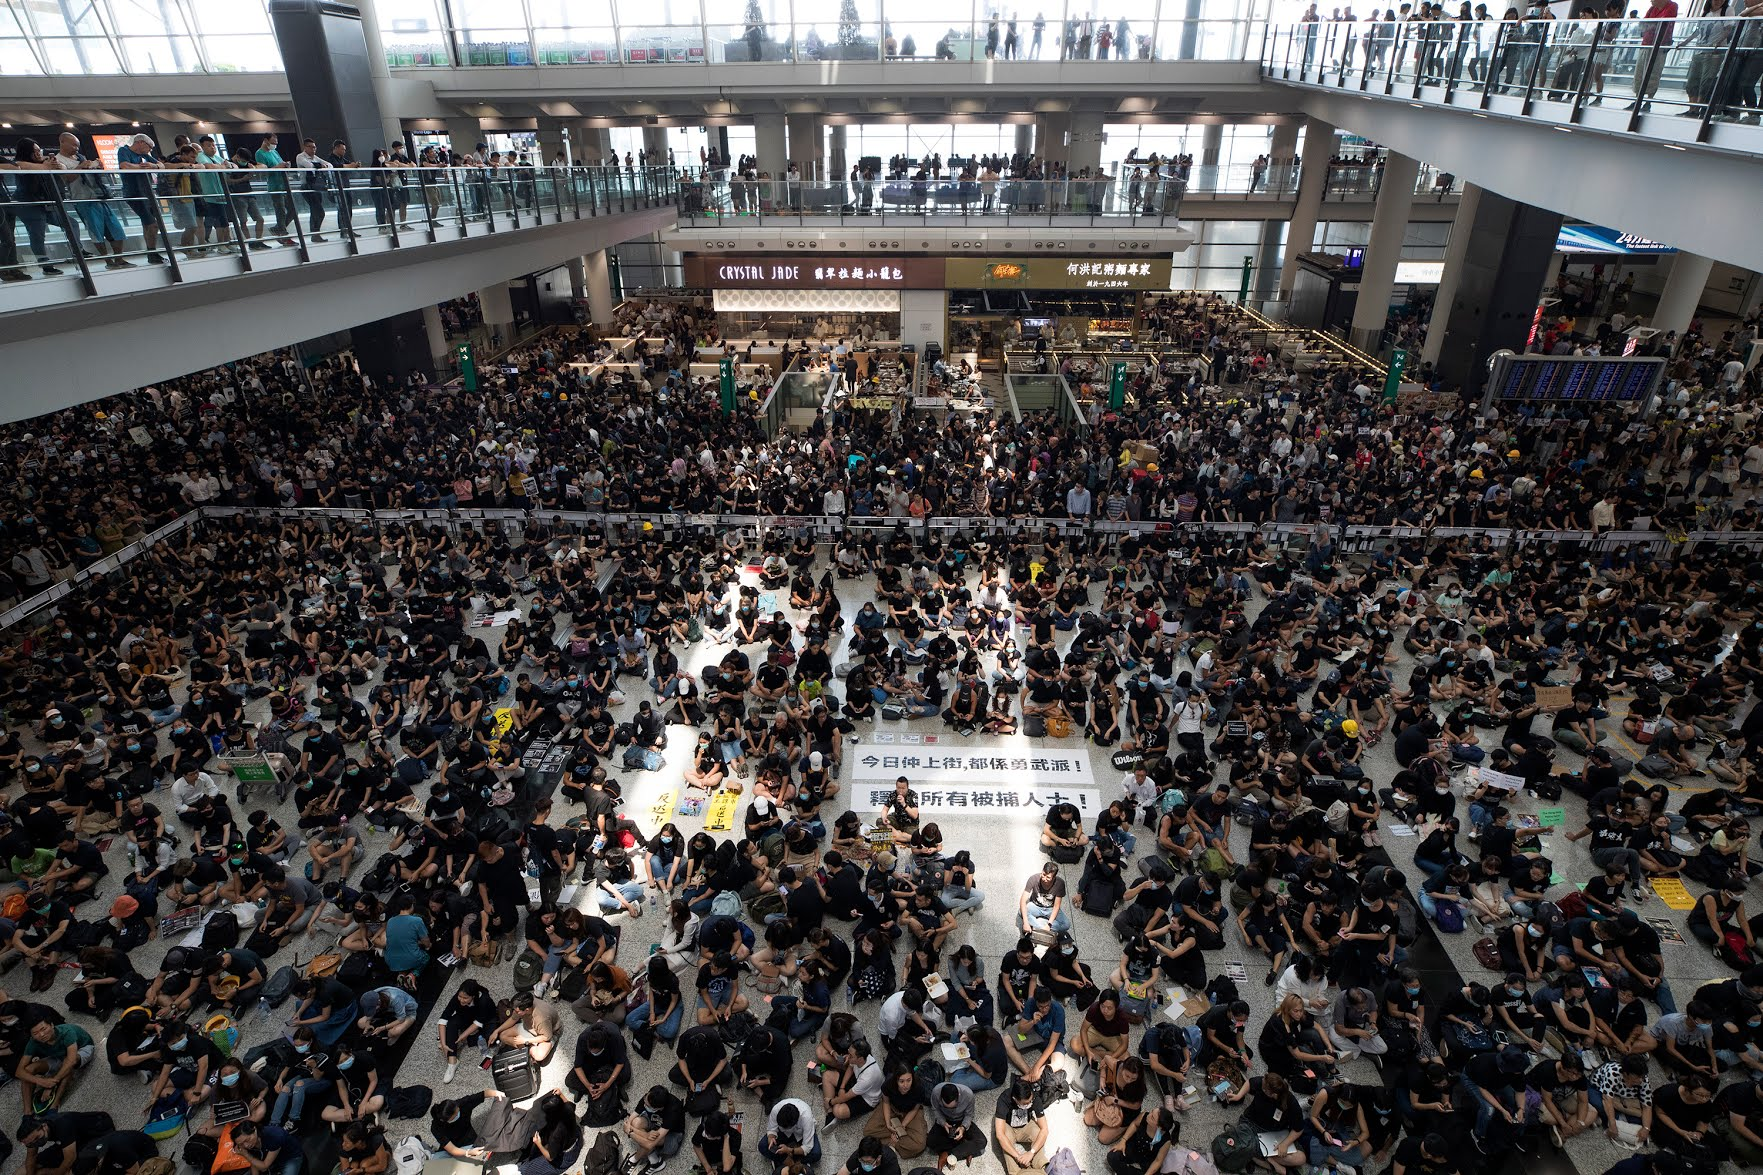 Flight cancellations have now entered a second day at one of the world's busiest airports, prompting China to slam the protests as 'terrorism.'